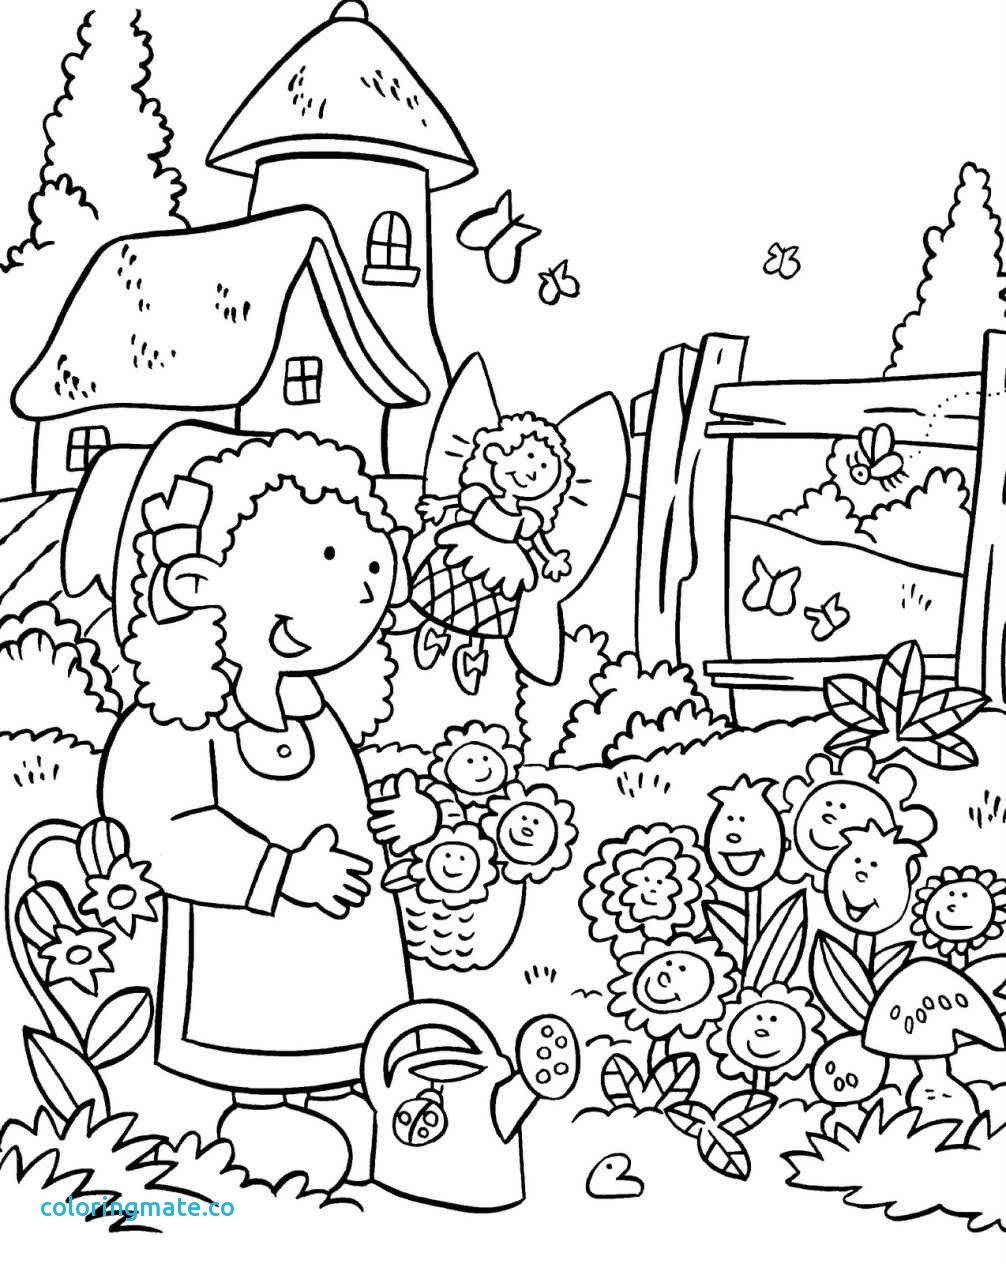 1006x1264 Turn Pictures Into Coloring Pages App